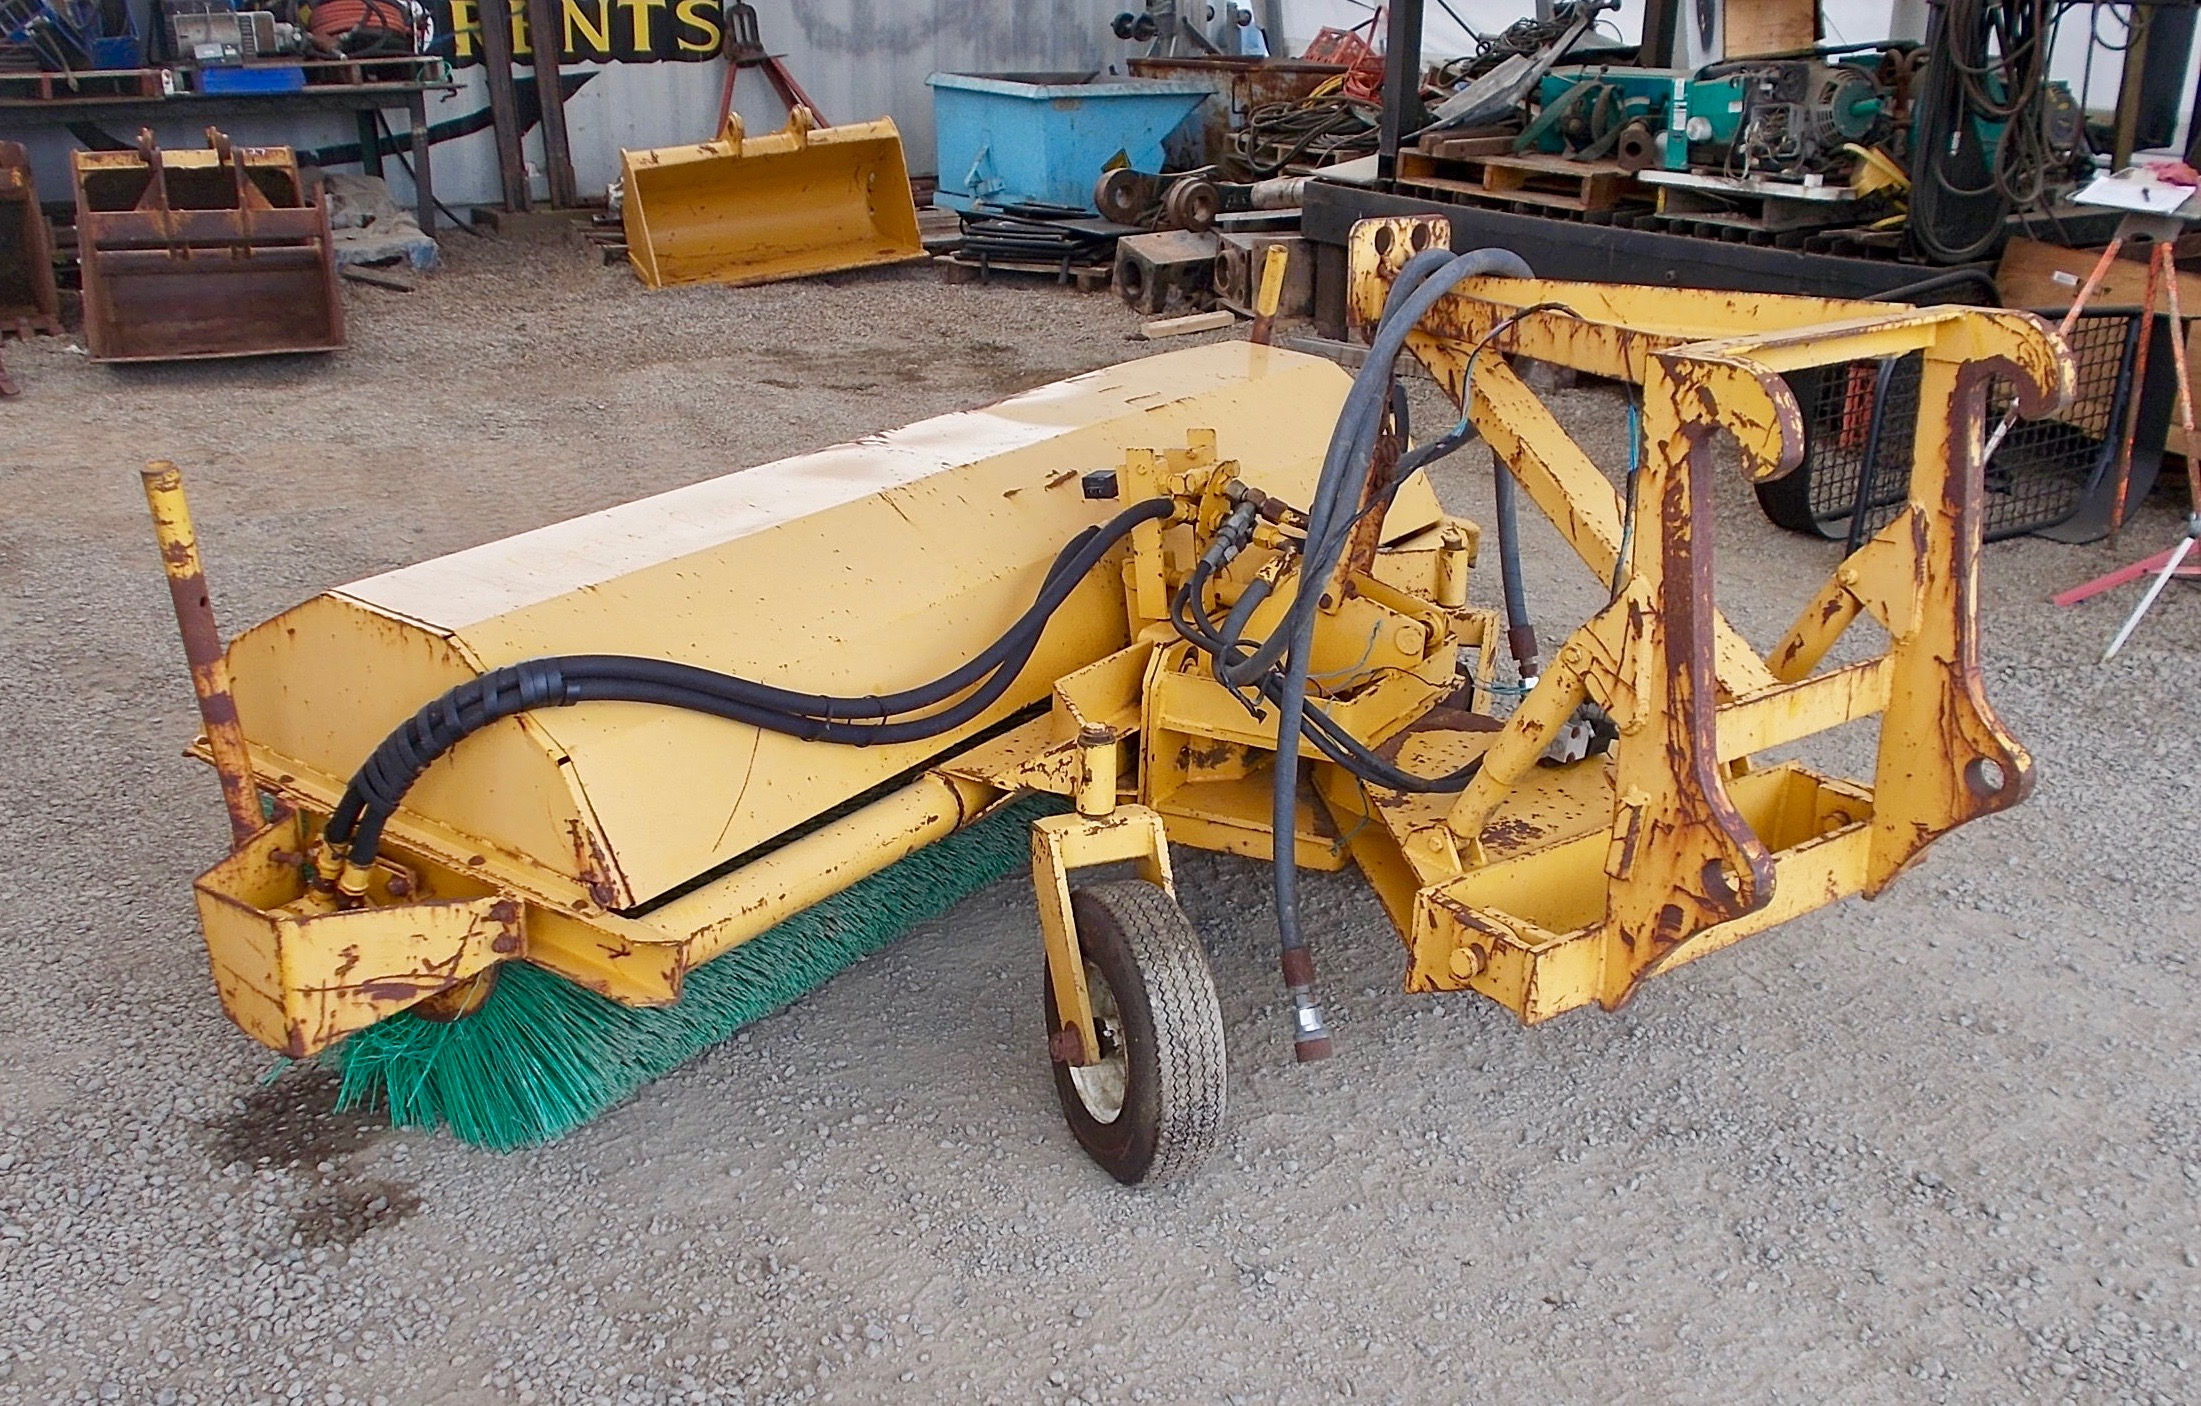 Used 96 Quot It Hooks Sweeper Broom For Sale